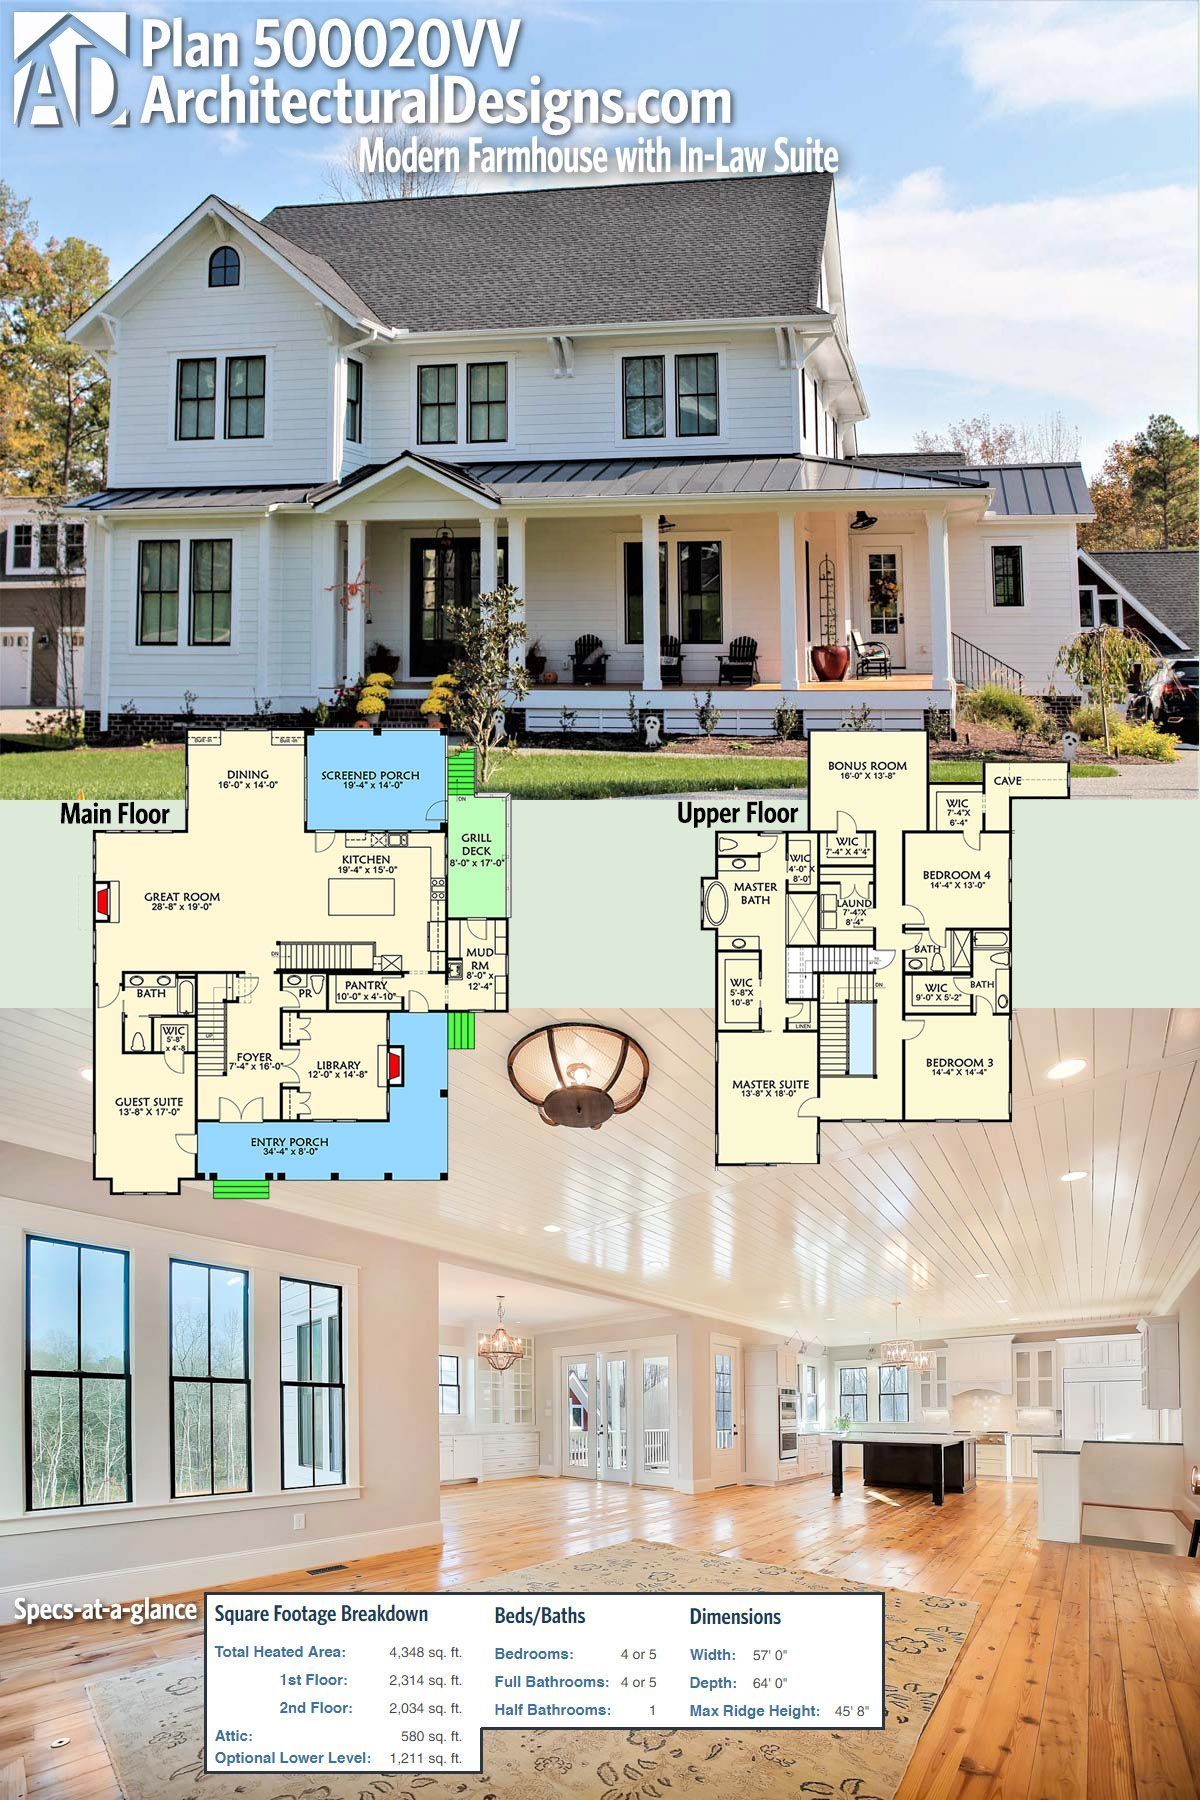 Architectural designs modern farmhouse plan 500020vv has an l shaped front with an a private entry to a guest suite perfect for an in law or nanny suite